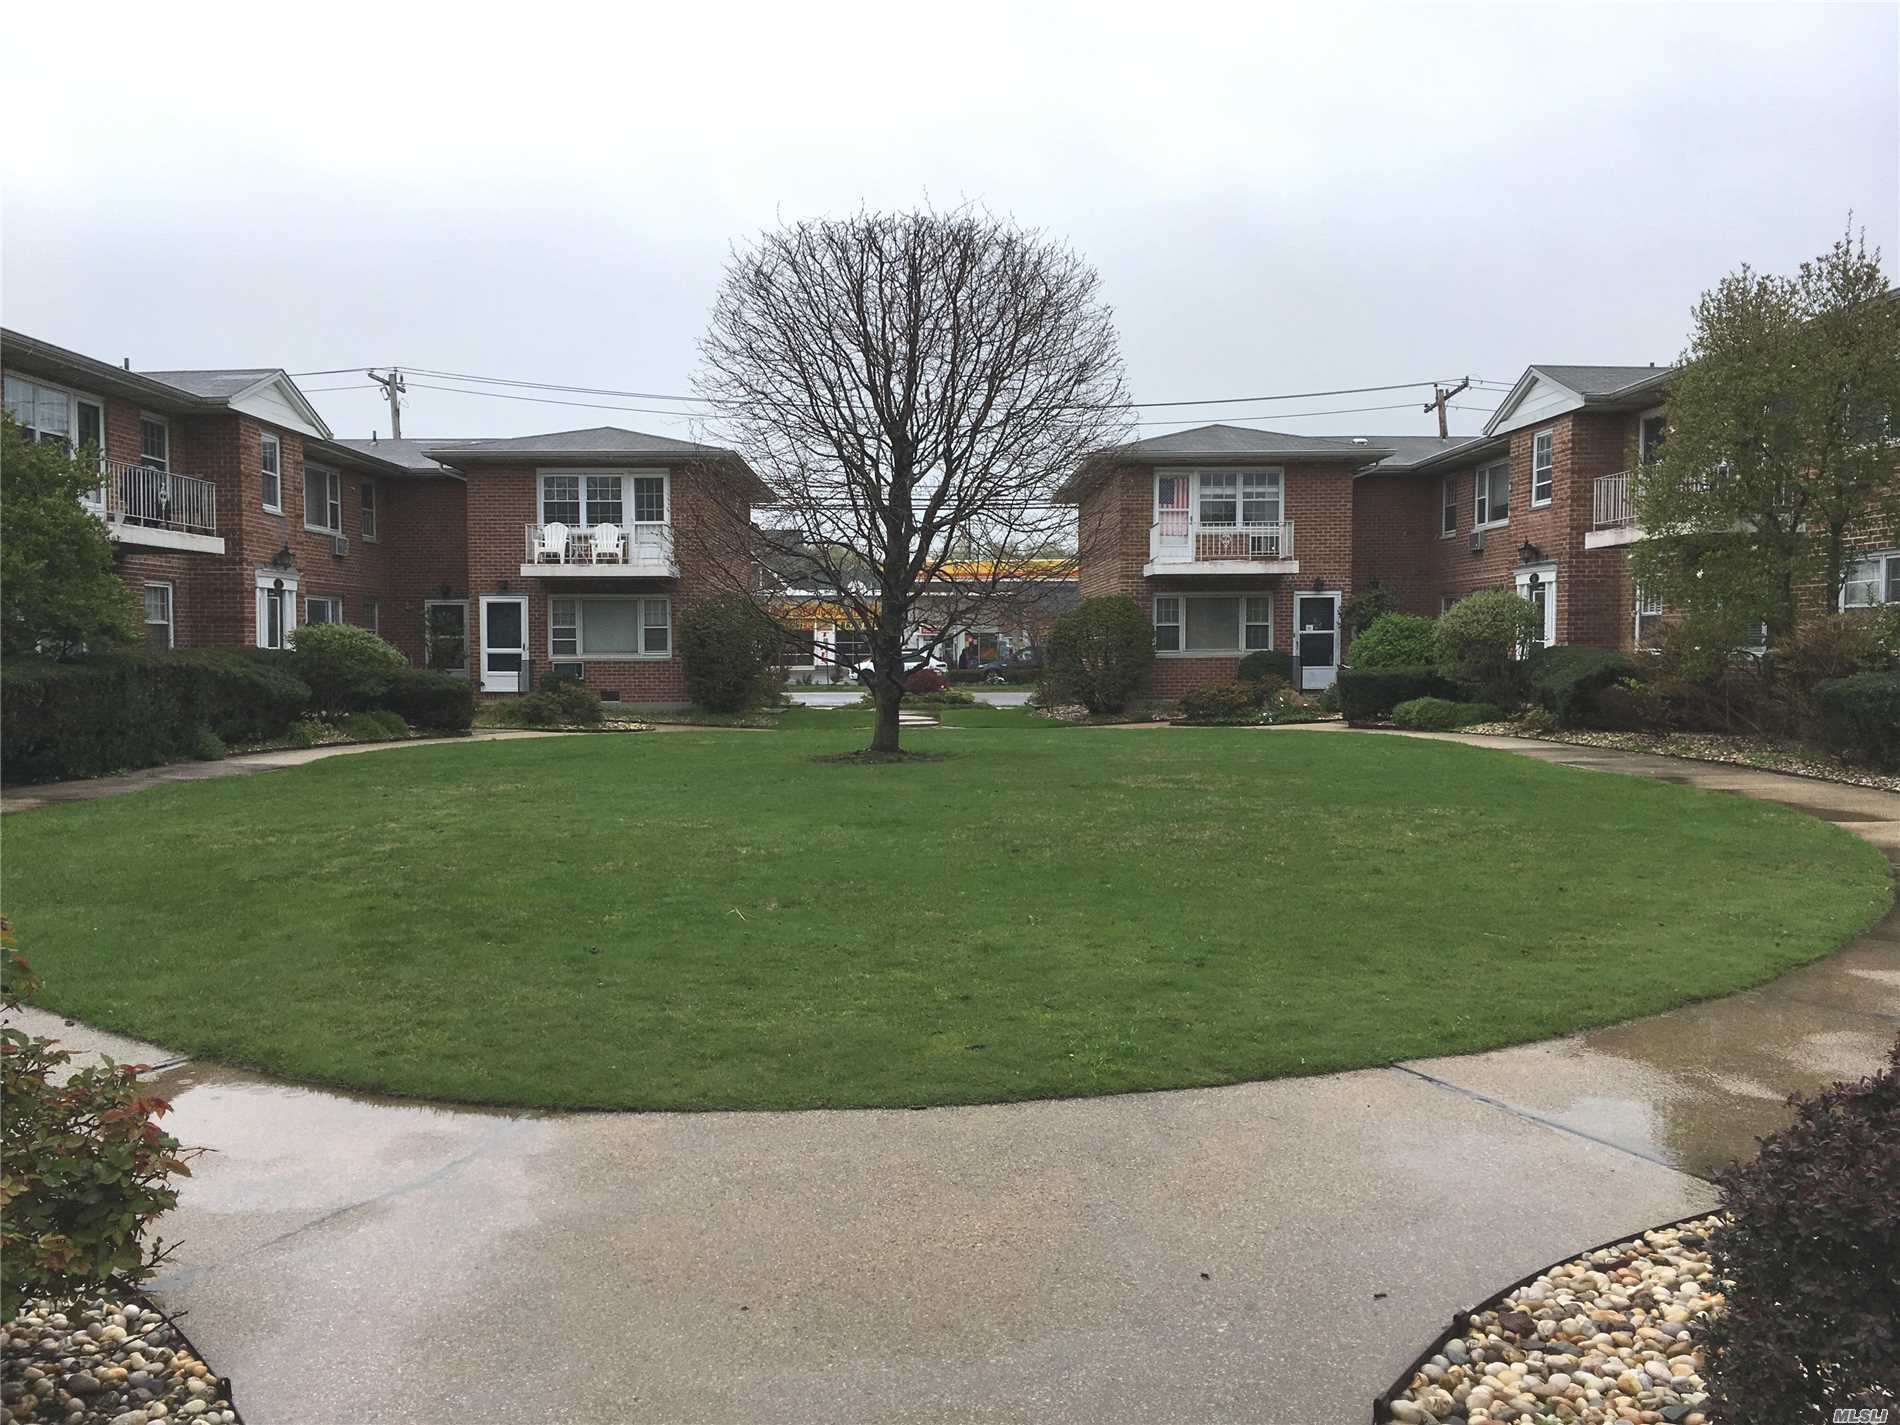 Studio/1 Bedroom Apartment in Courtyard Setting. Directly Across the Street From Soundview Shopping Center.